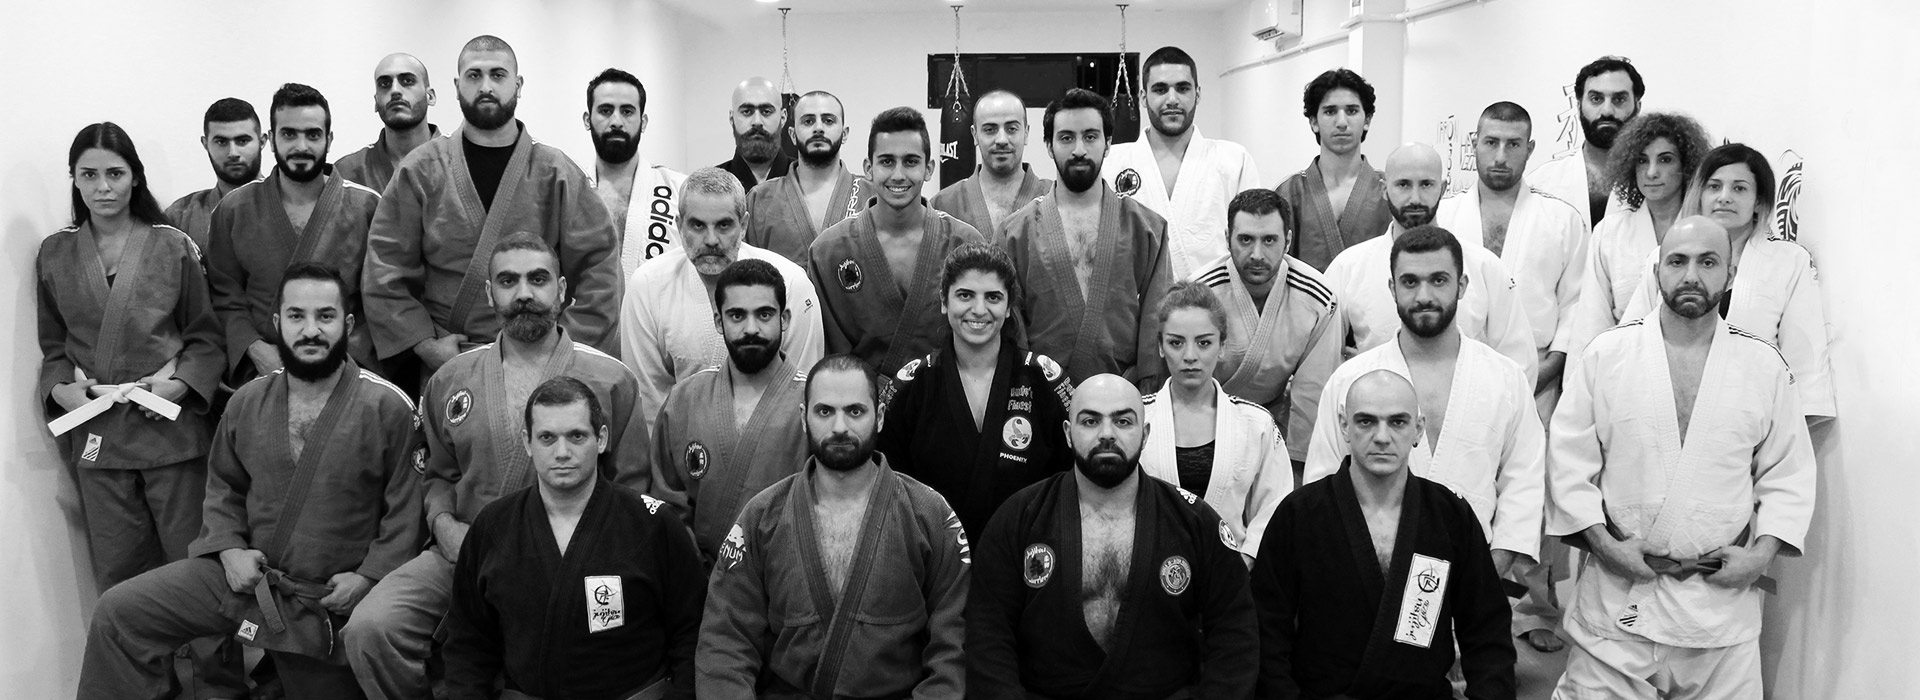 the-guru-academy-lebanon-japanese-jujitsu-team-2018